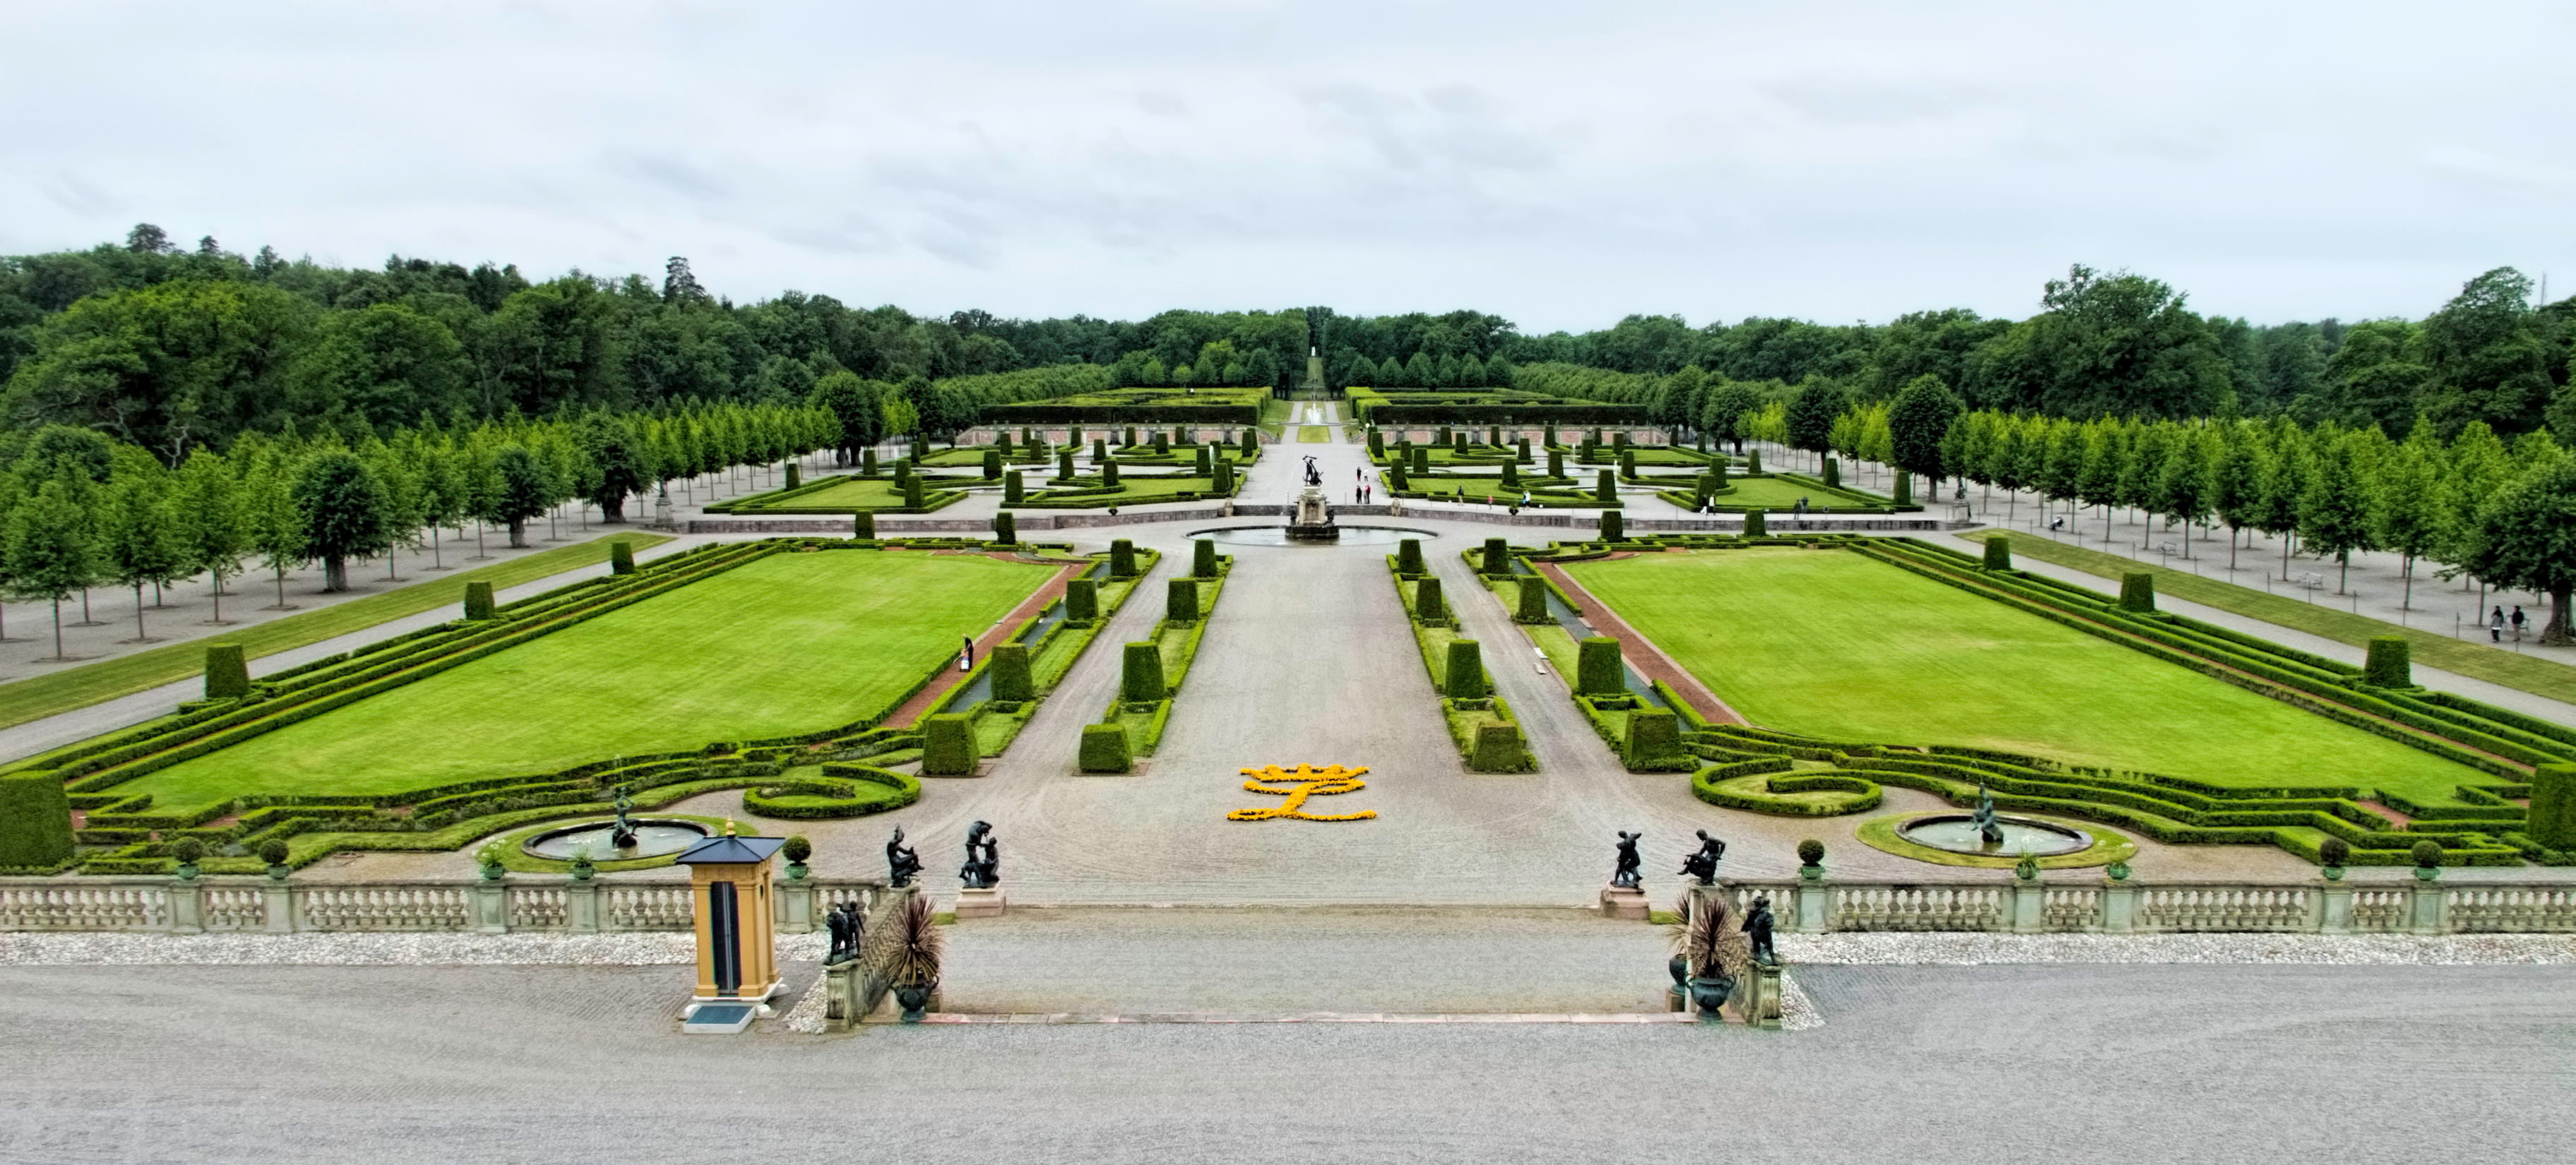 how to get to drottningholm palace